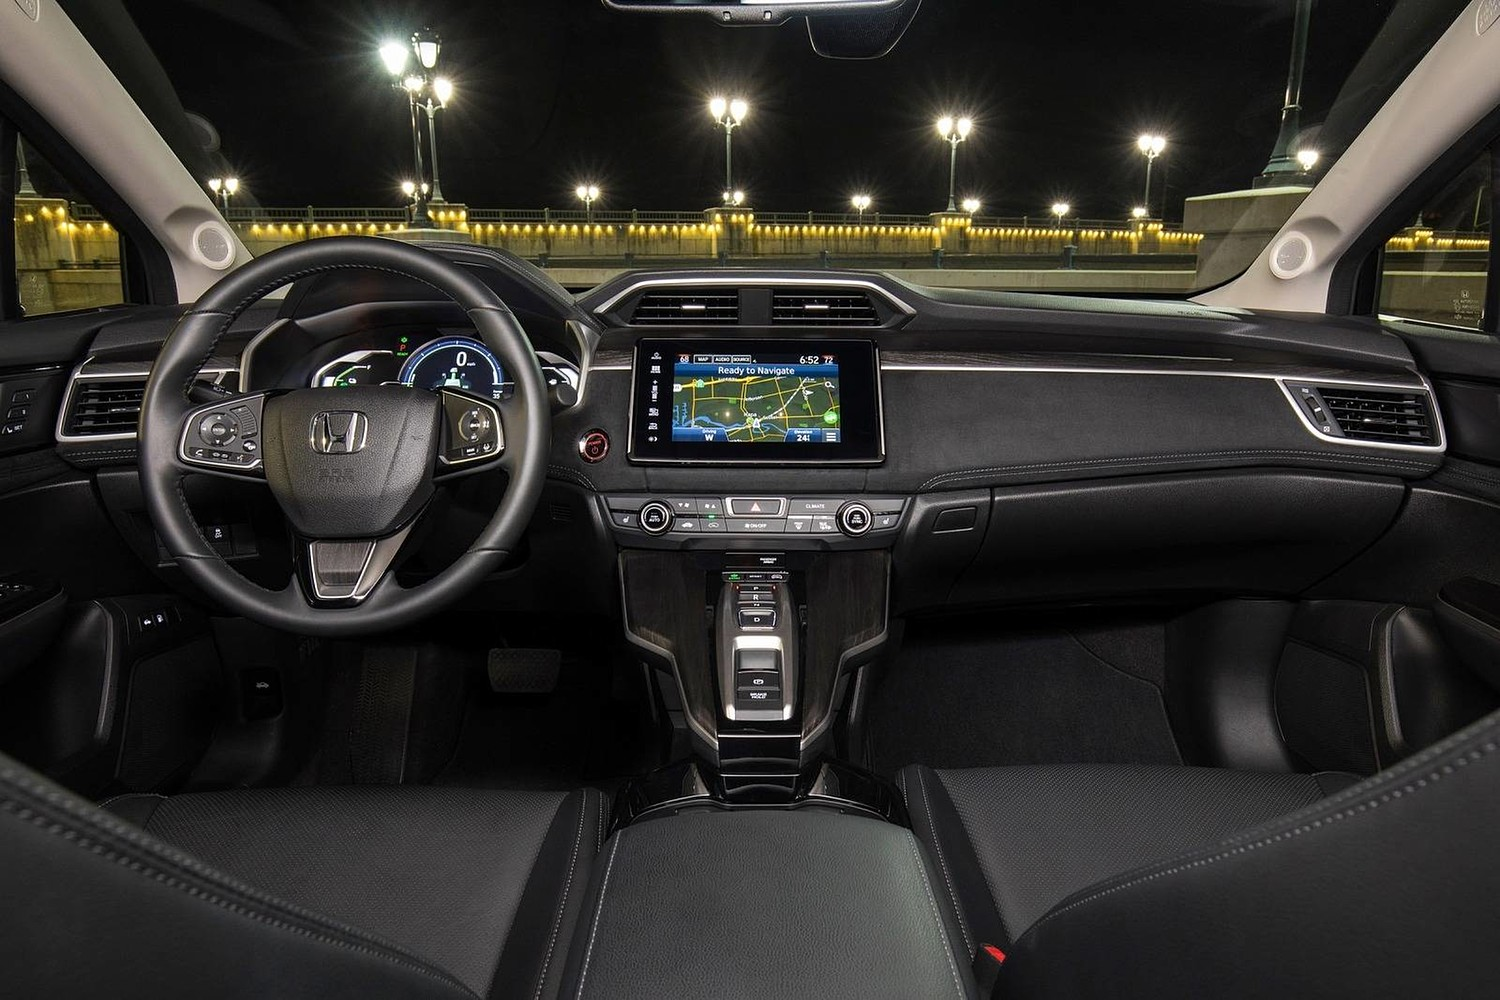 2018 Honda Clarity Touring Plug-In Hybrid Sedan Dashboard